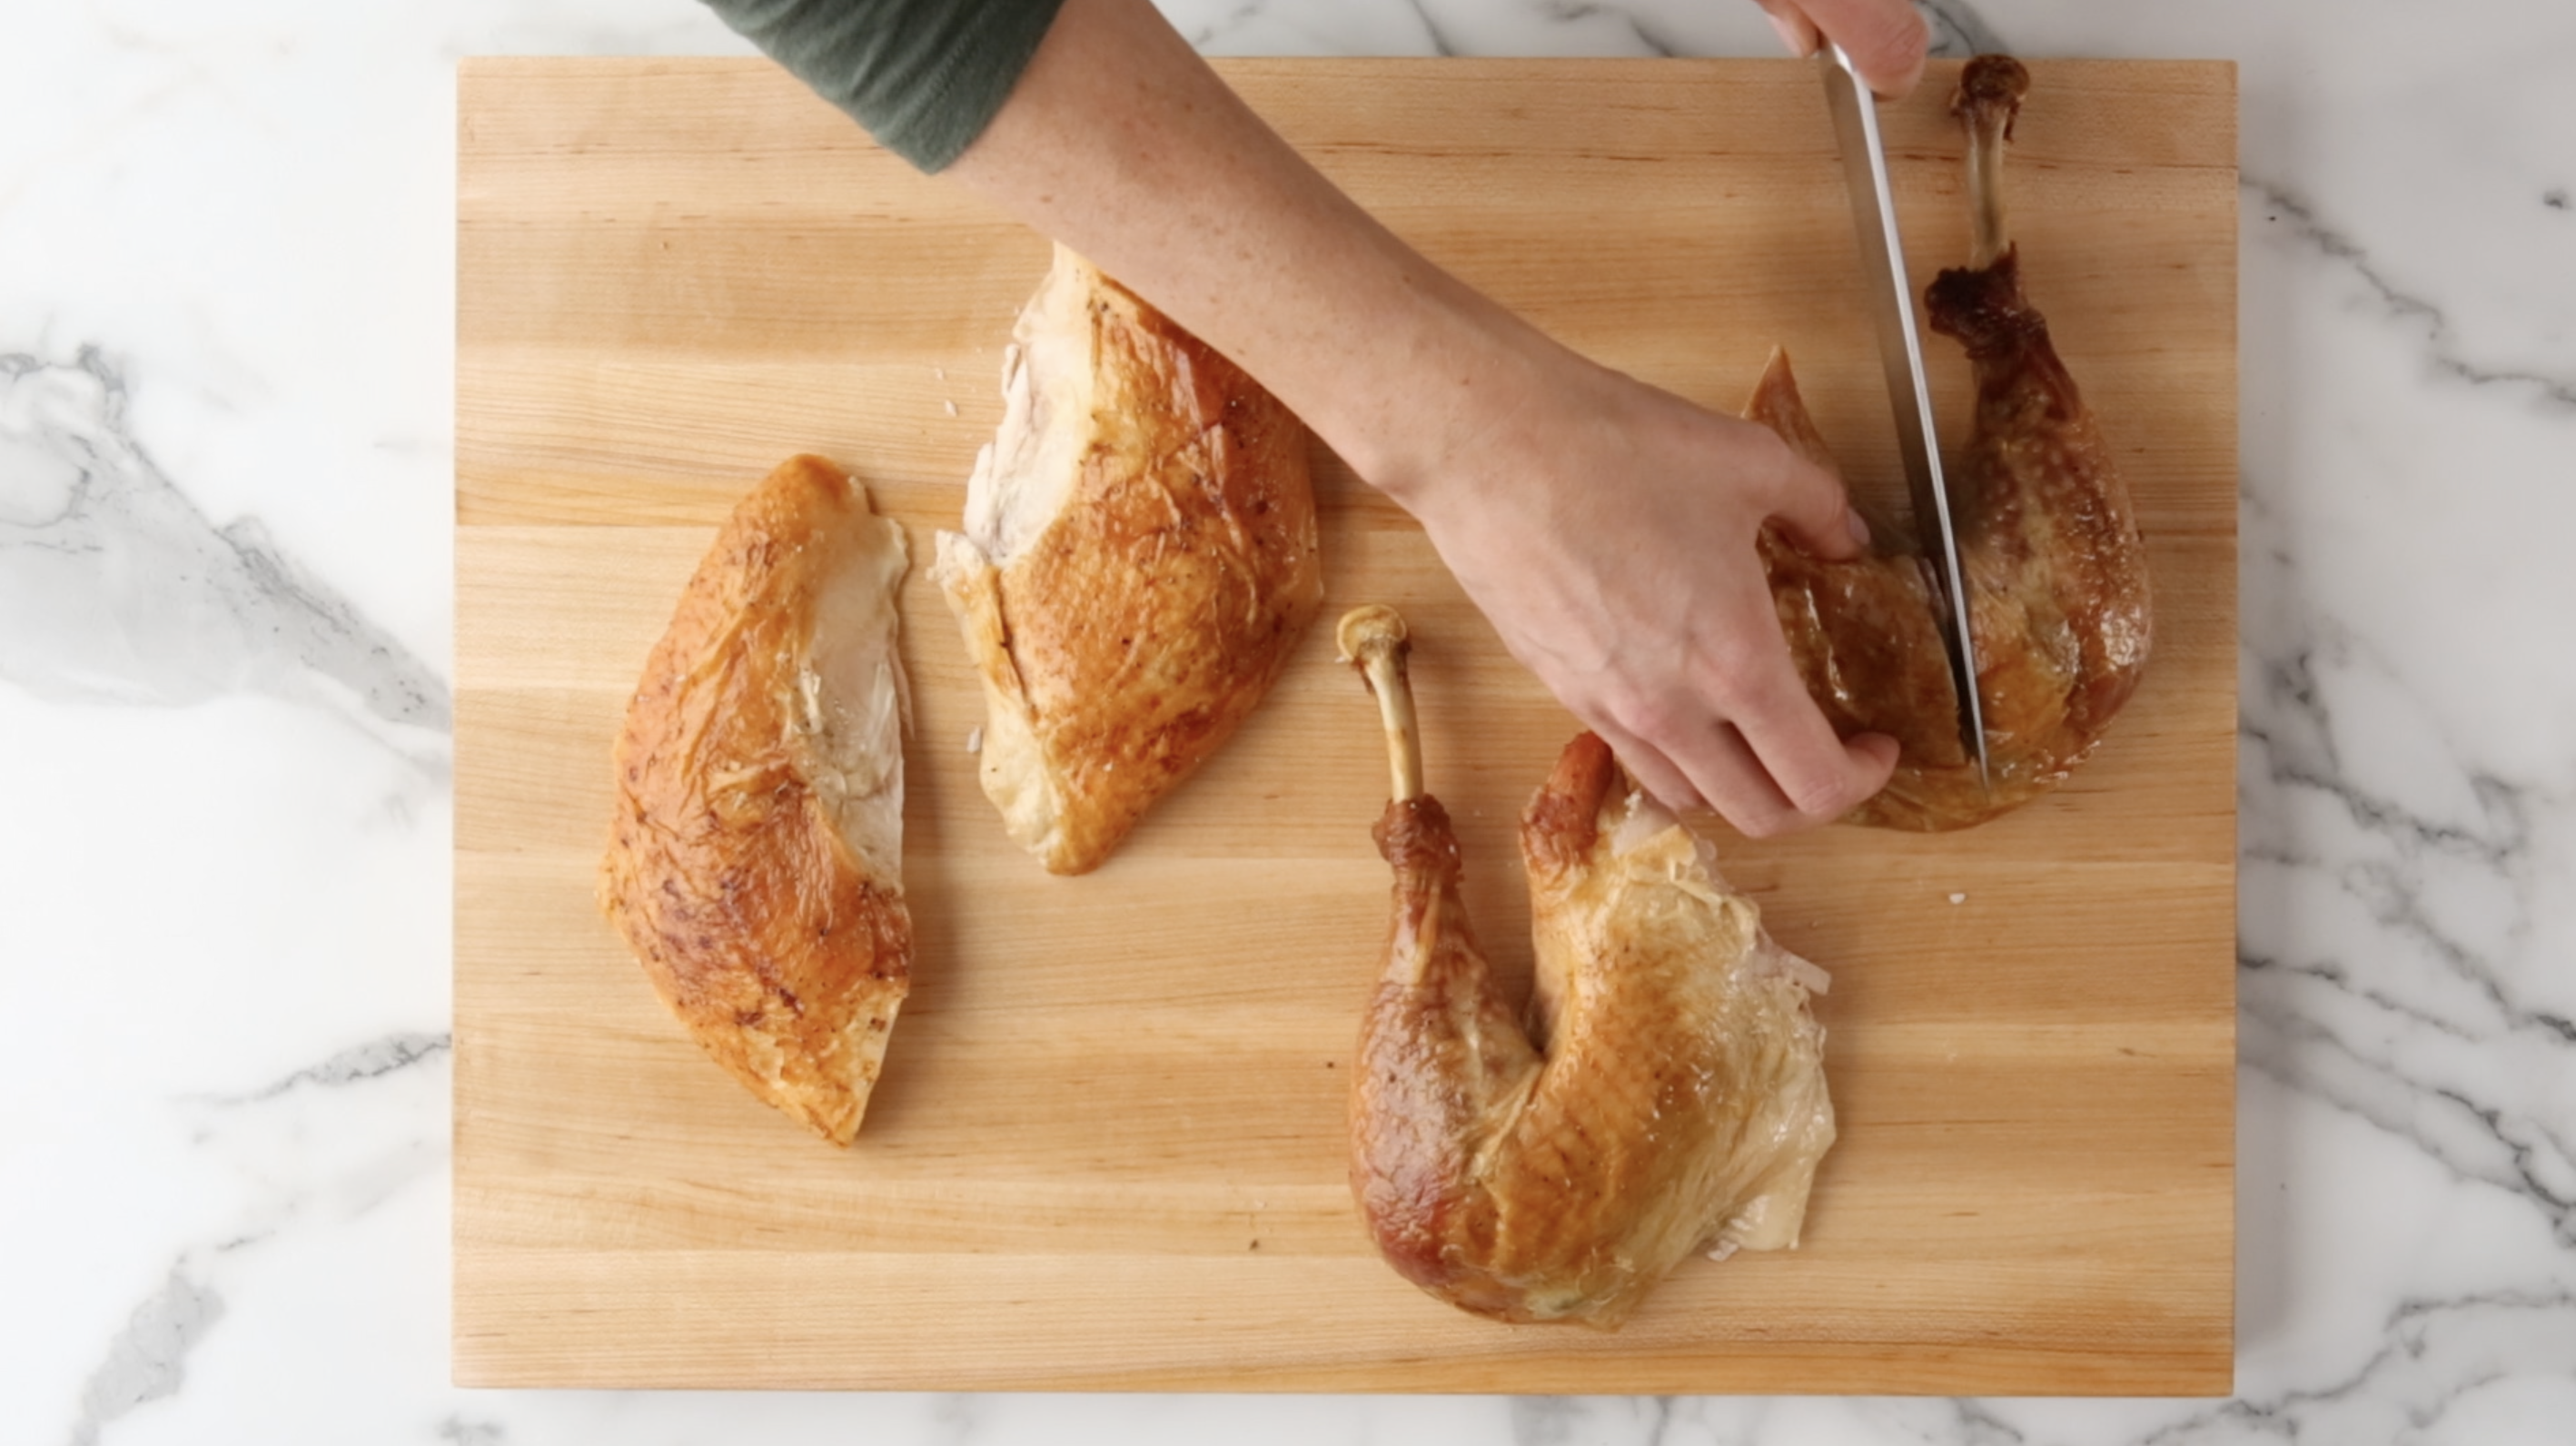 Separate the turkey Drumstick and Thigh